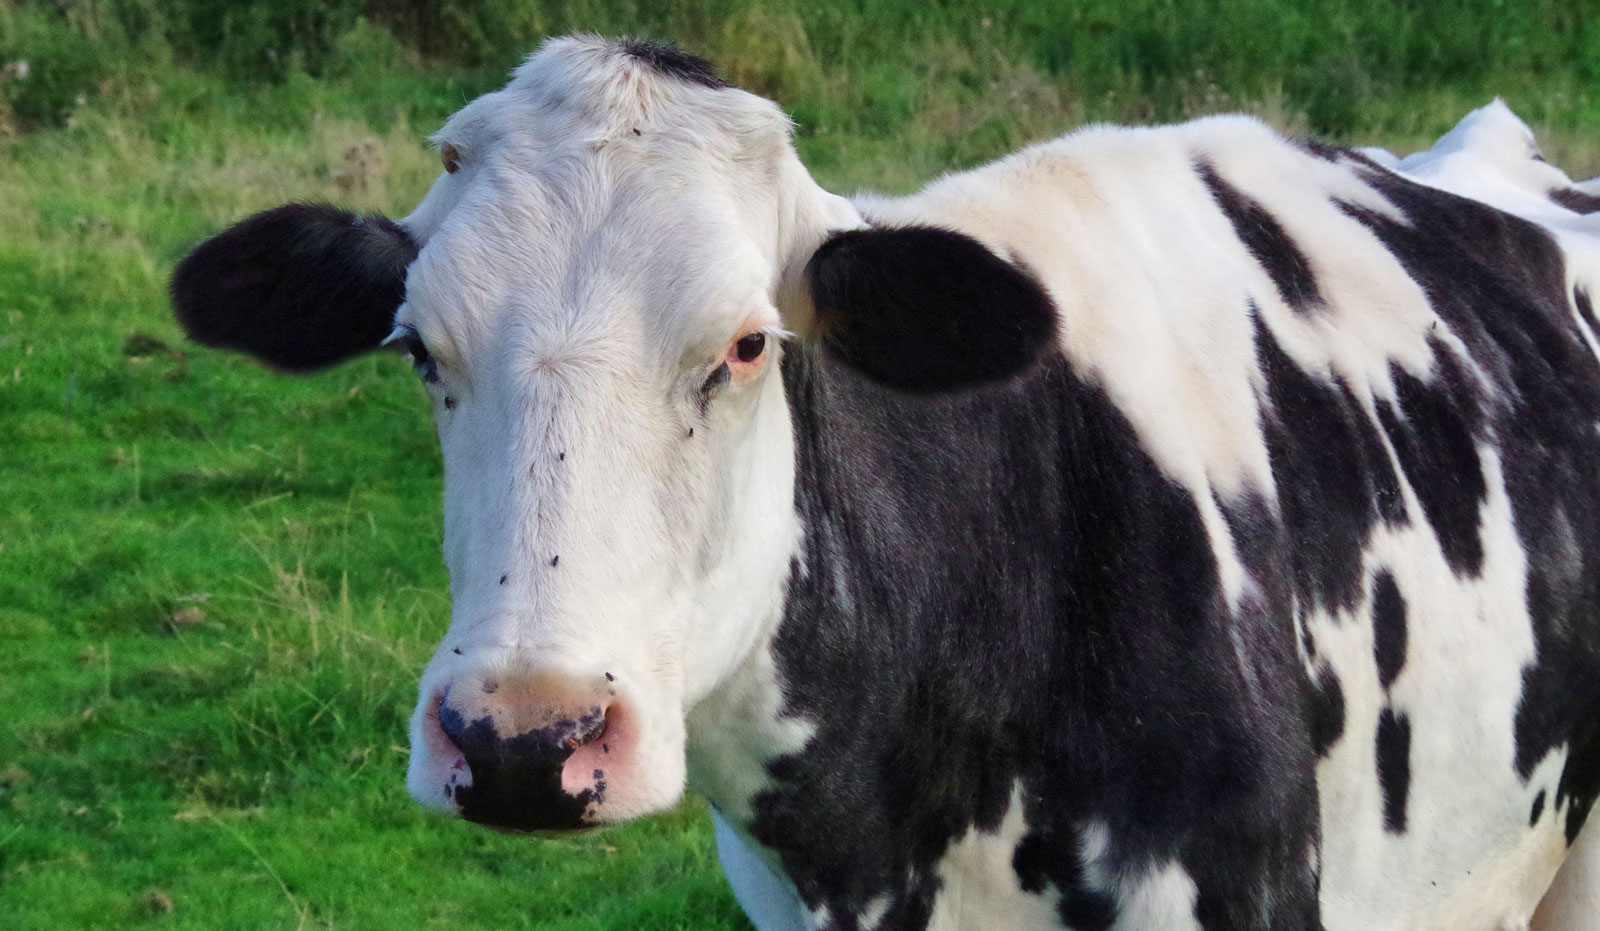 The internet of cows: 5G has already arrived for this herd